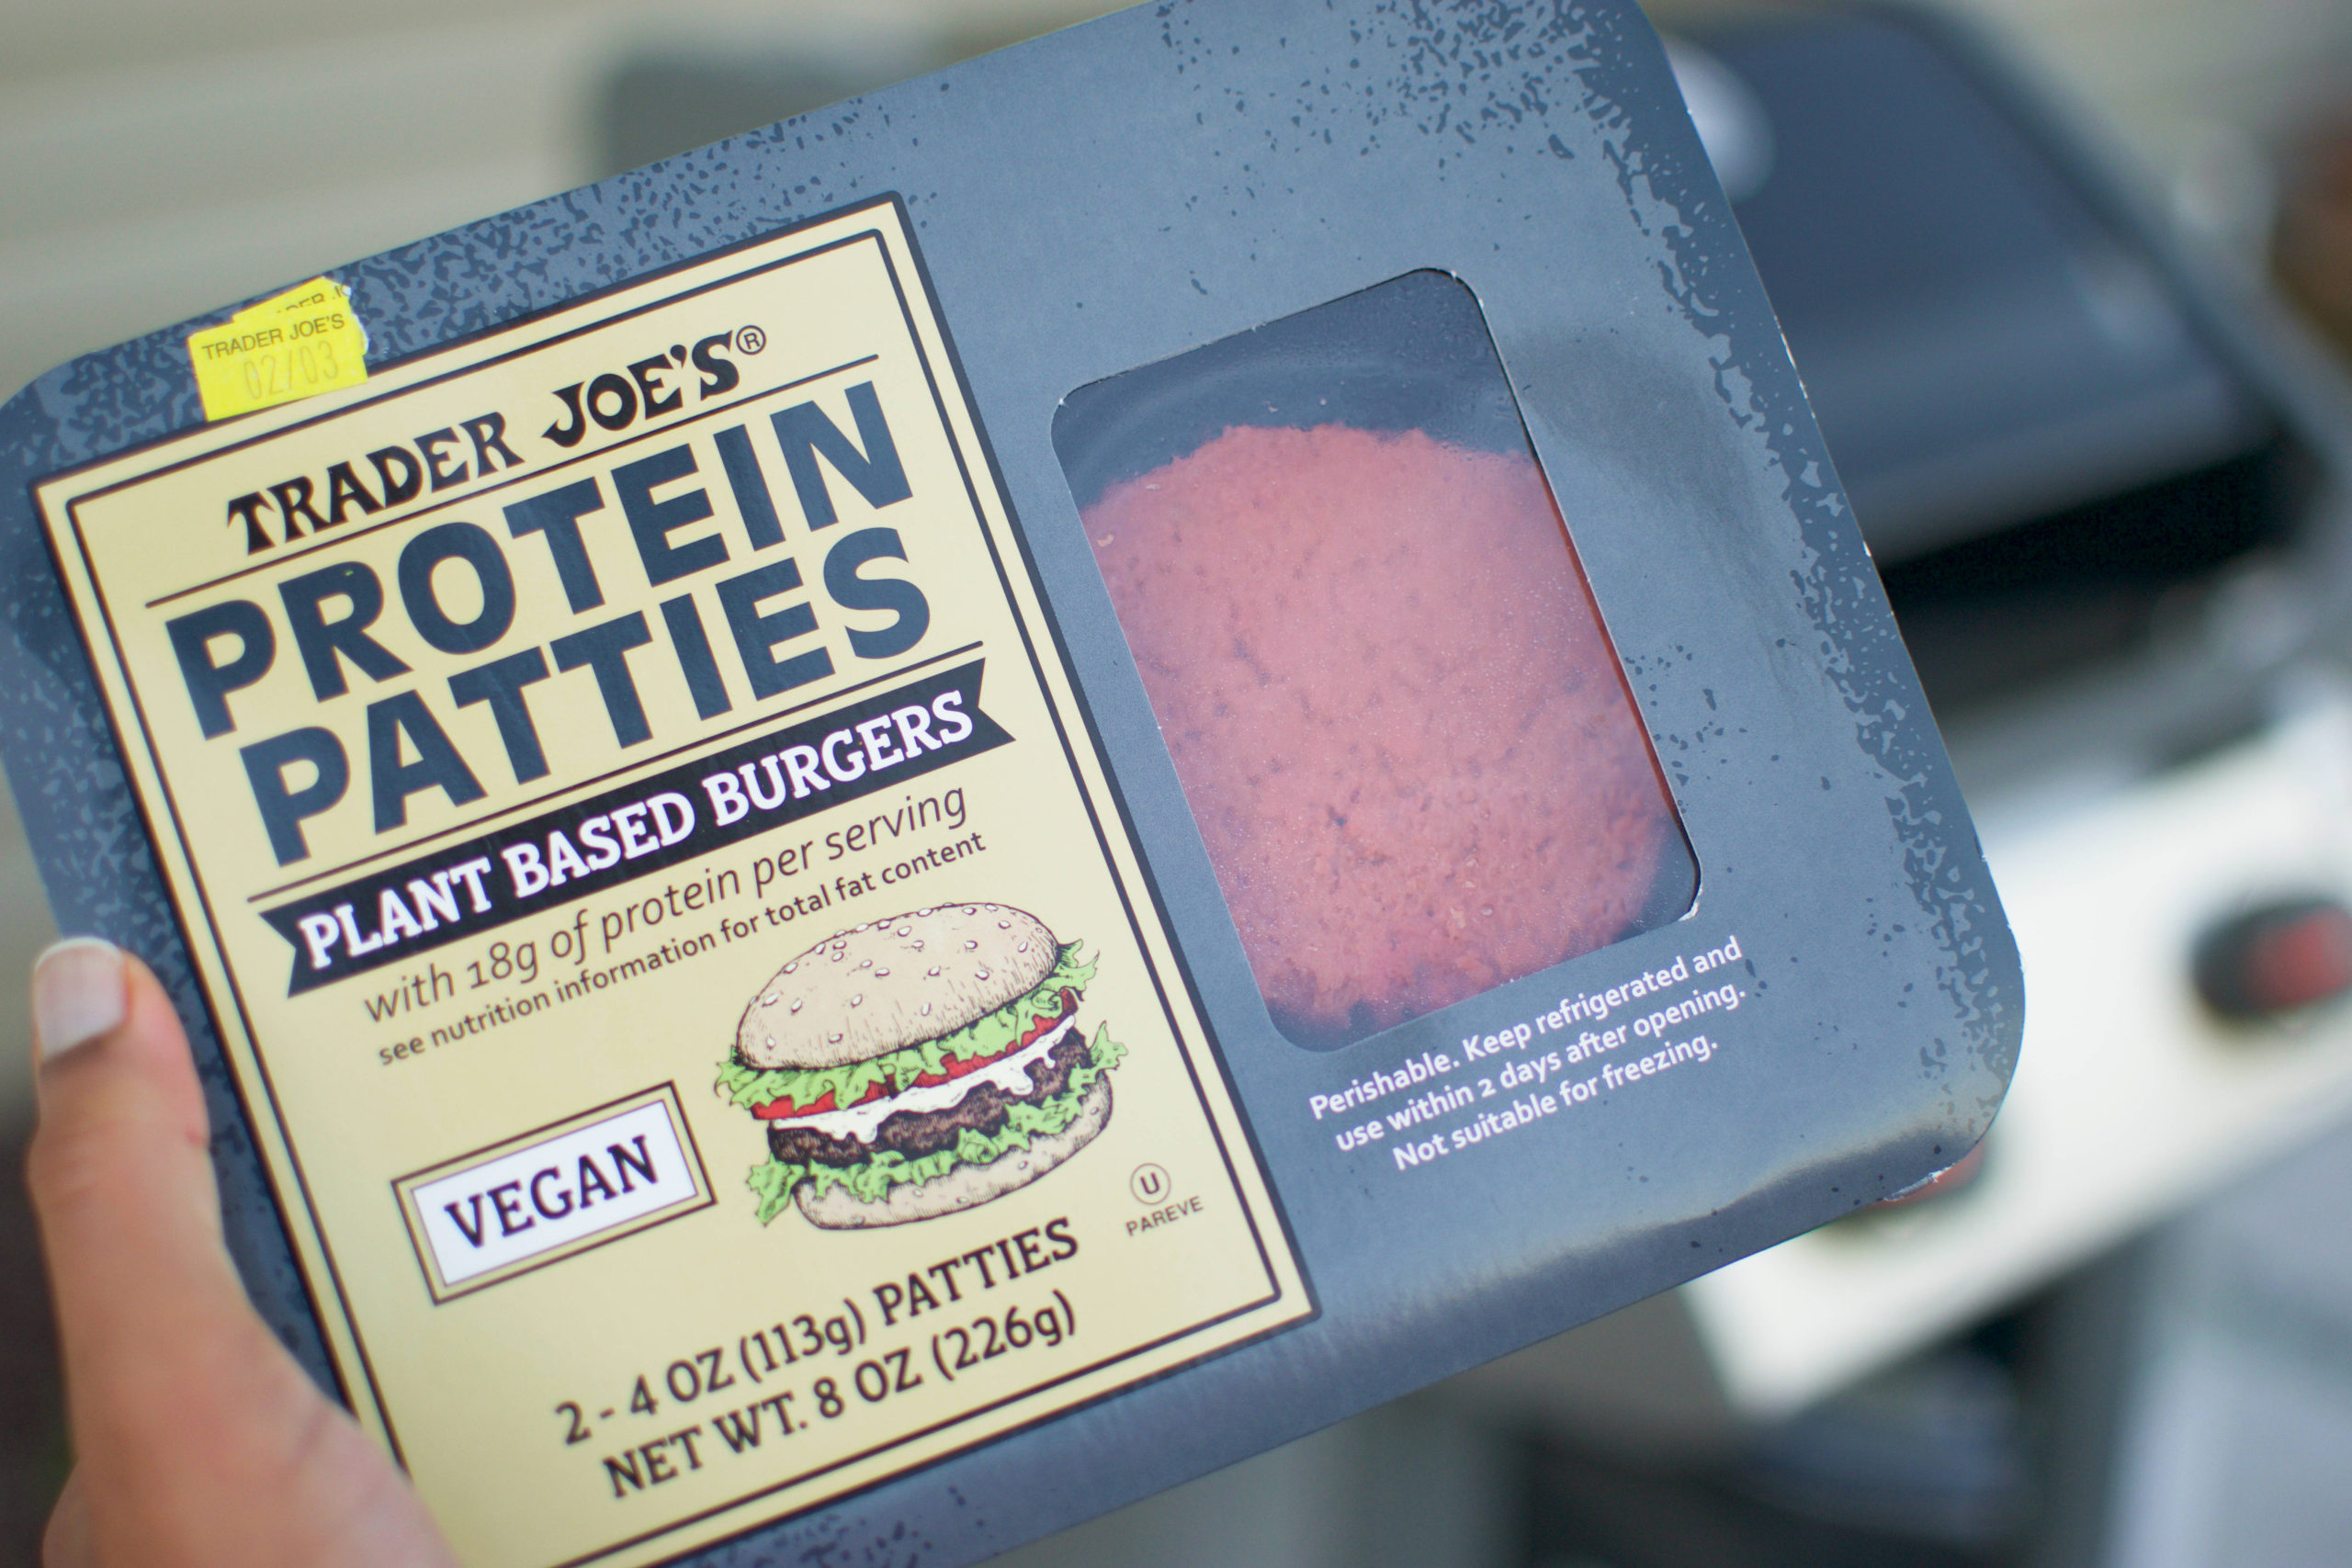 Trader Joe's Protein Patties Burger Package